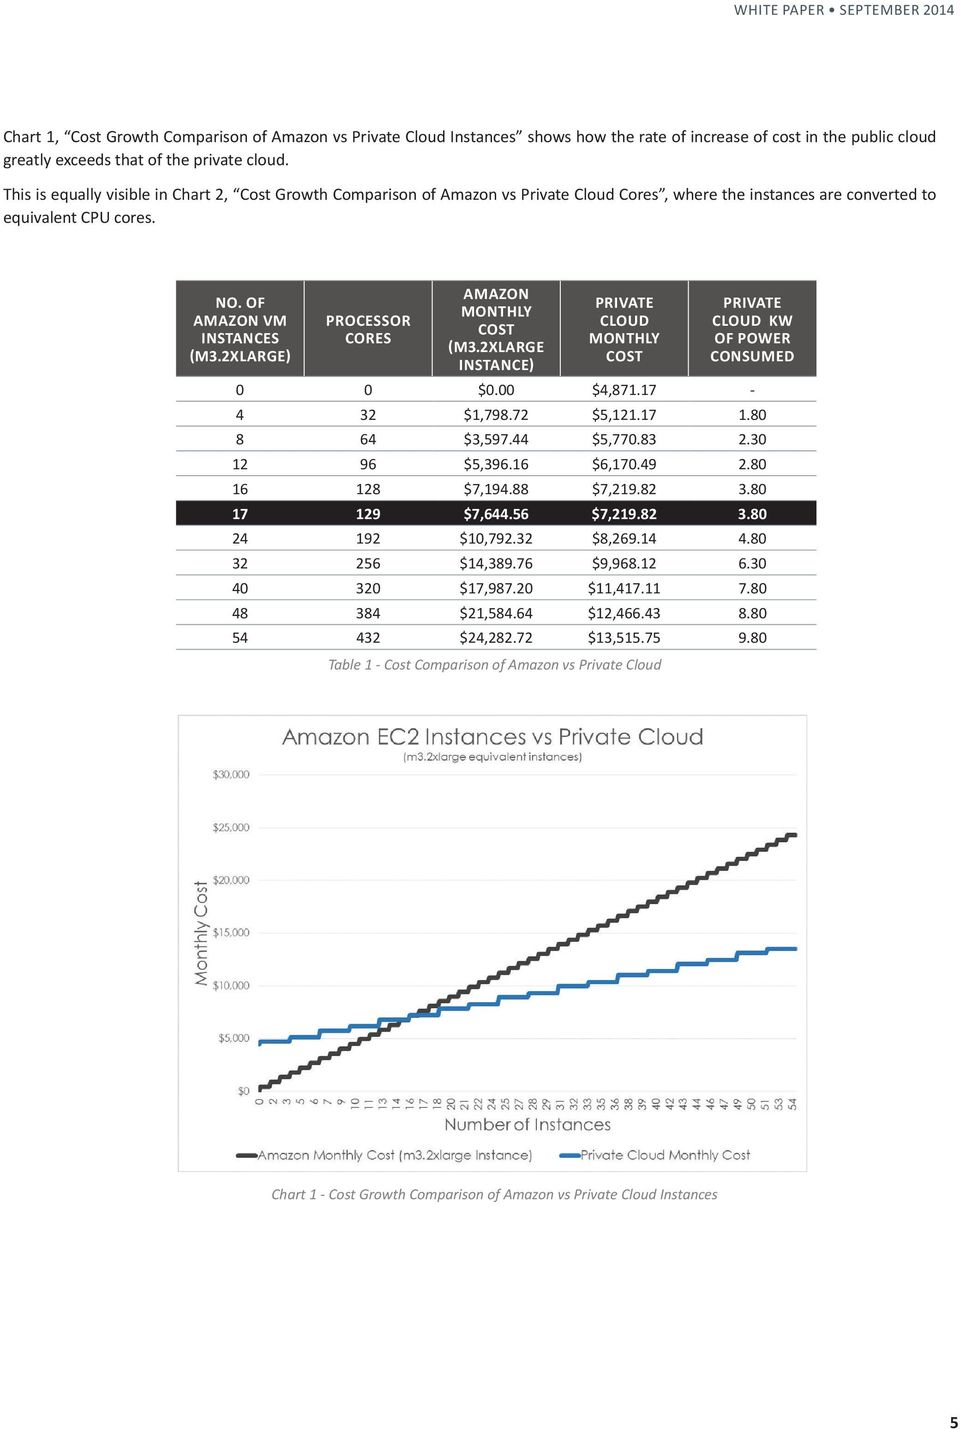 2xlarge) Processor Cores Amazon Monthly Cost (m3.2xlarge Instance) Private Cloud Monthly Cost Private Cloud kw of Power Consumed 0 0 $0.00 $4,871.17-4 32 $1,798.72 $5,121.17 1.80 8 64 $3,597.